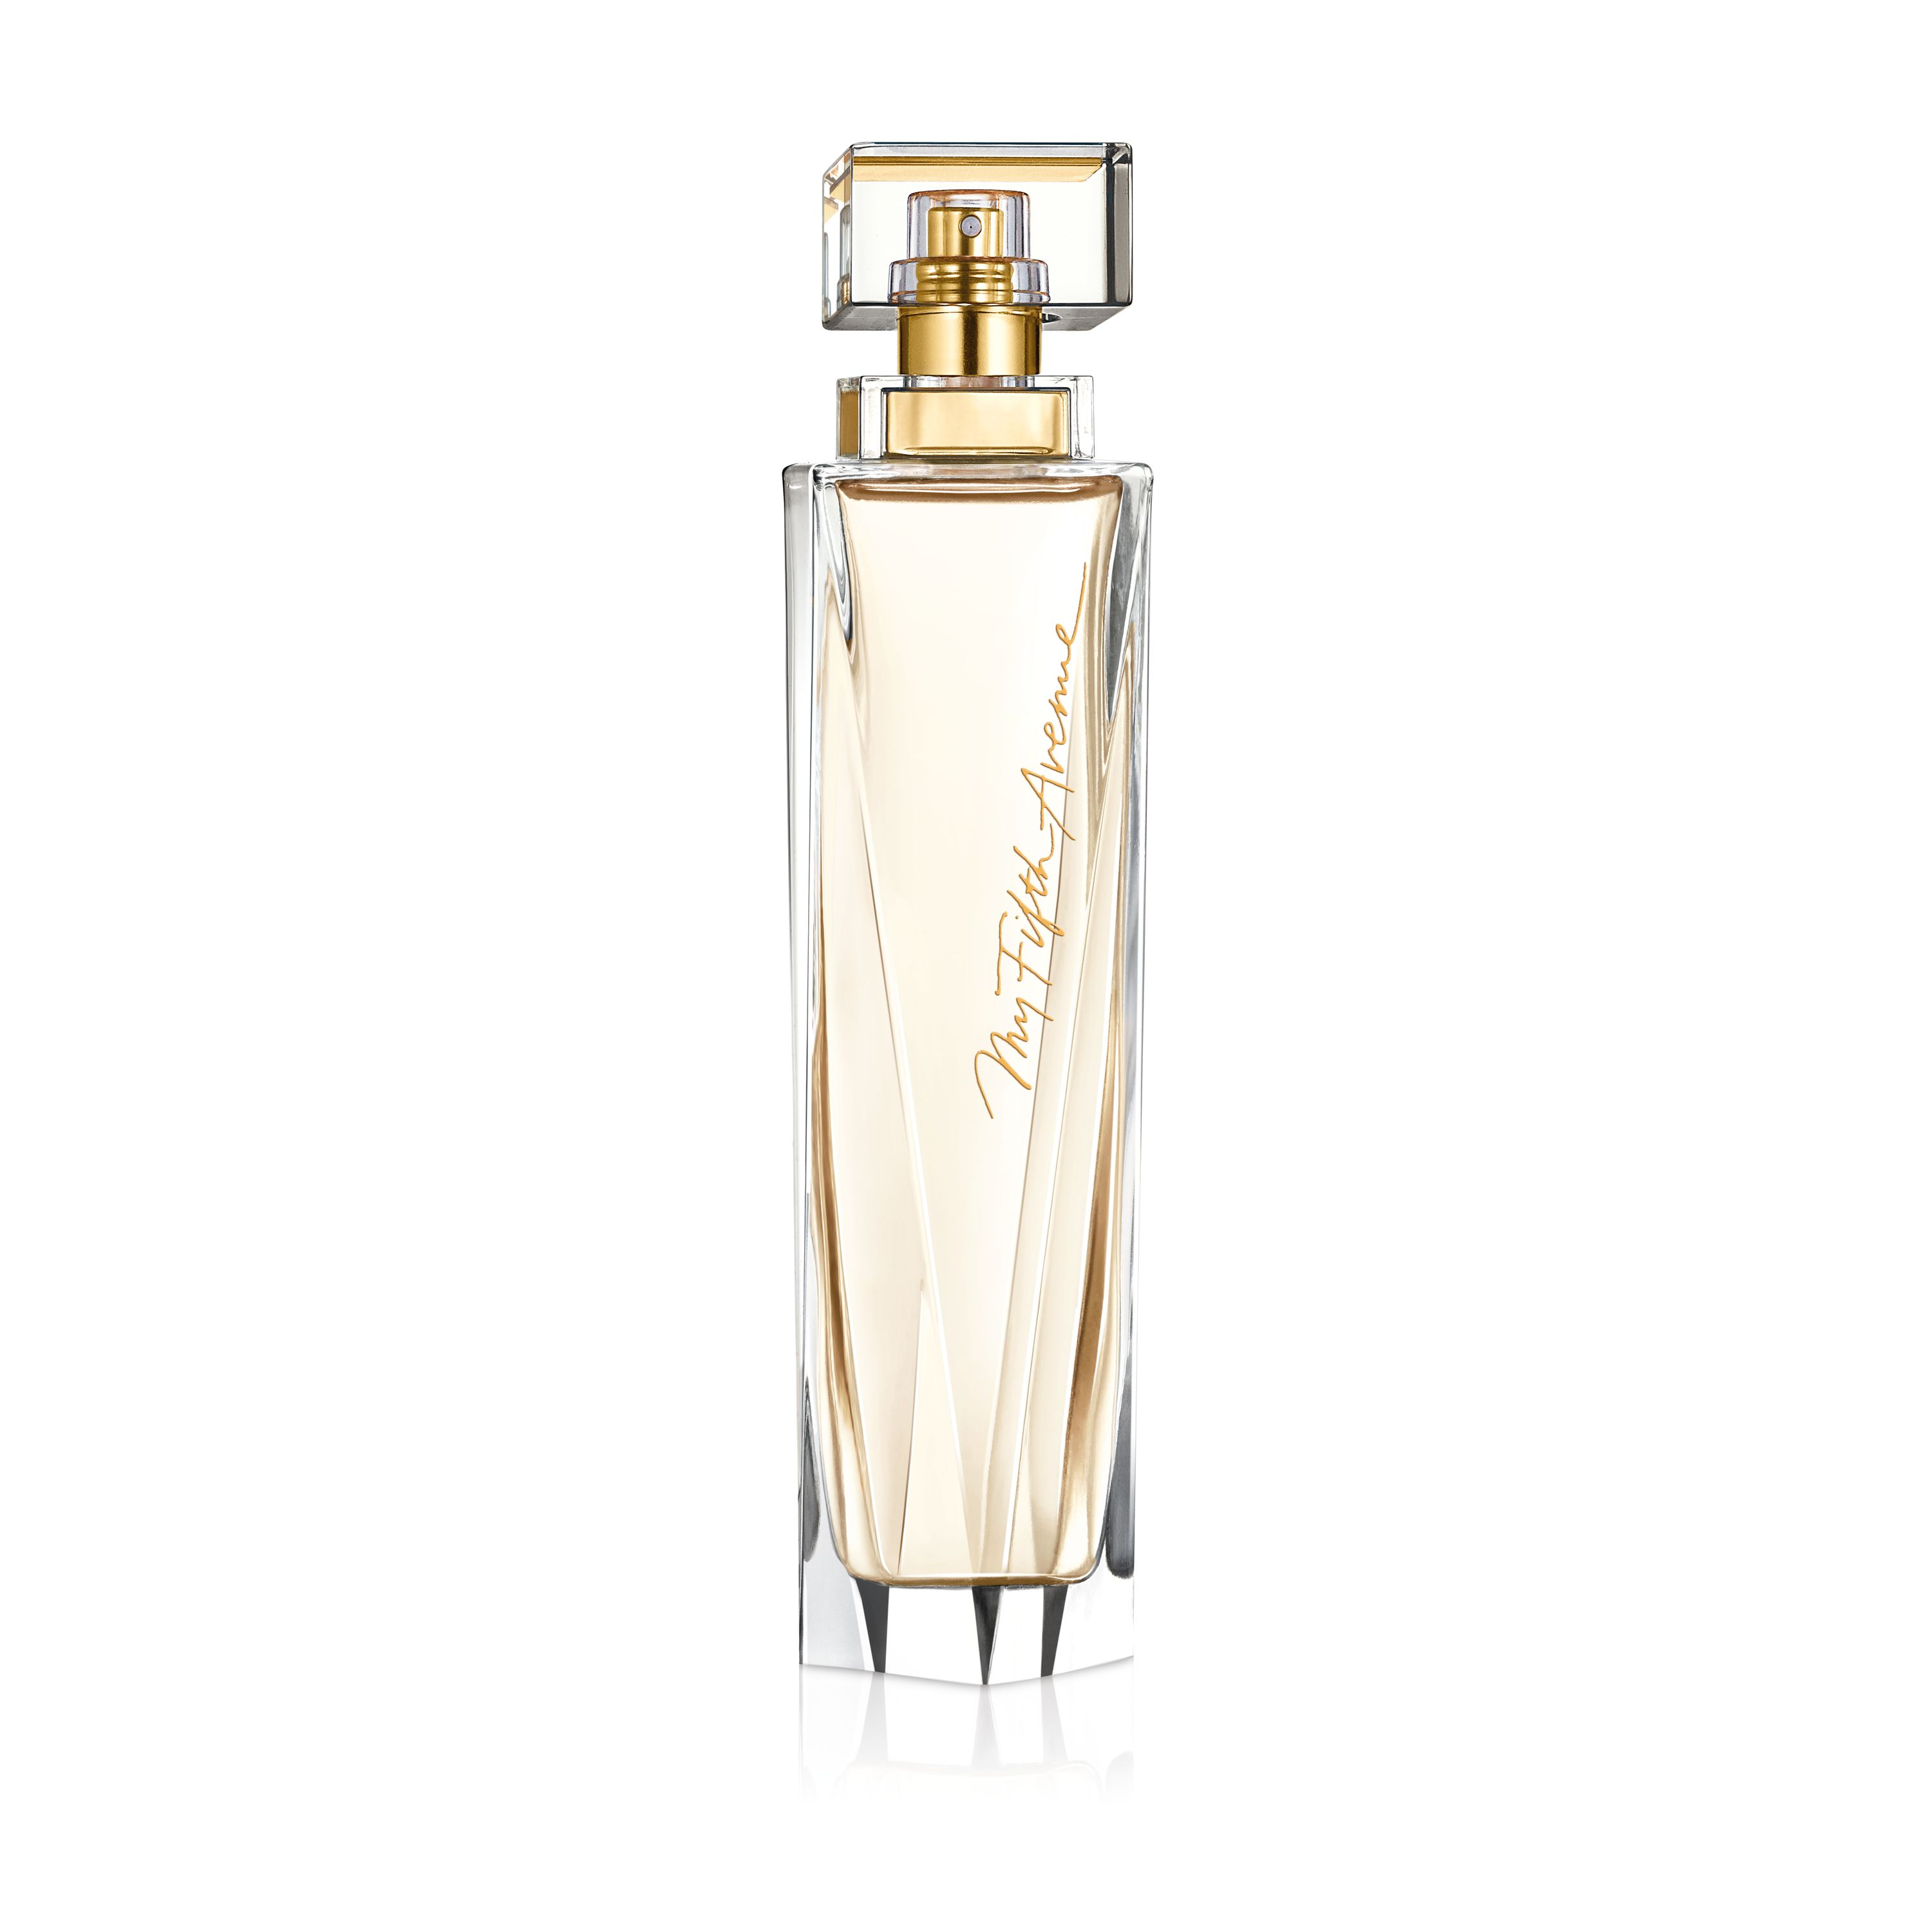 My Fifth Avenue Edp